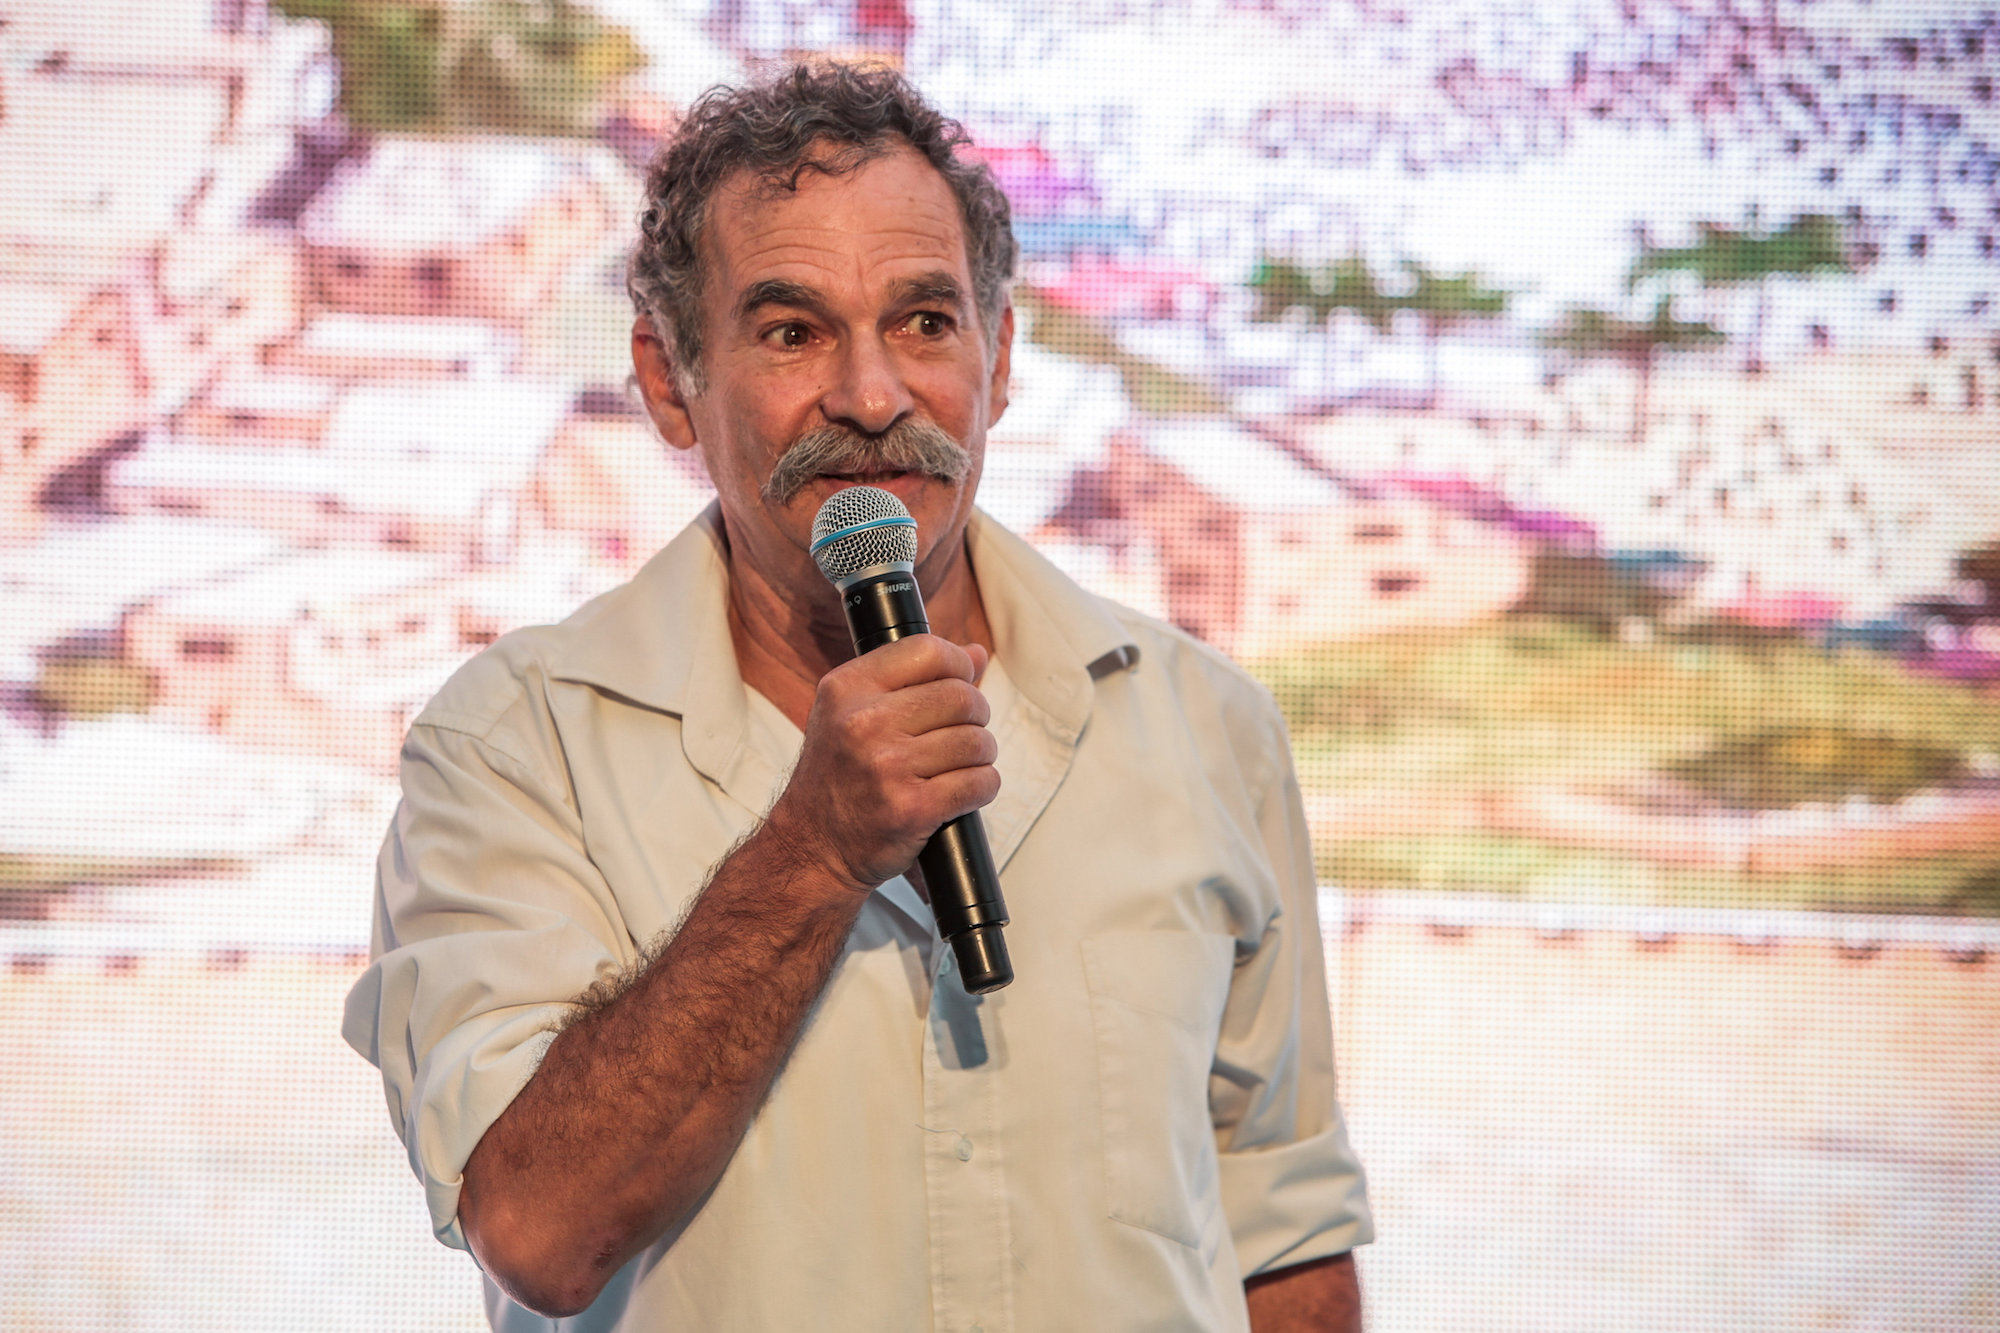 Elad Executive Director David Be'eri speaks at an event at the City of David archaeological site, in the East Jerusalem neighborhood of Silwan, June 30, 2019. (Flash90)